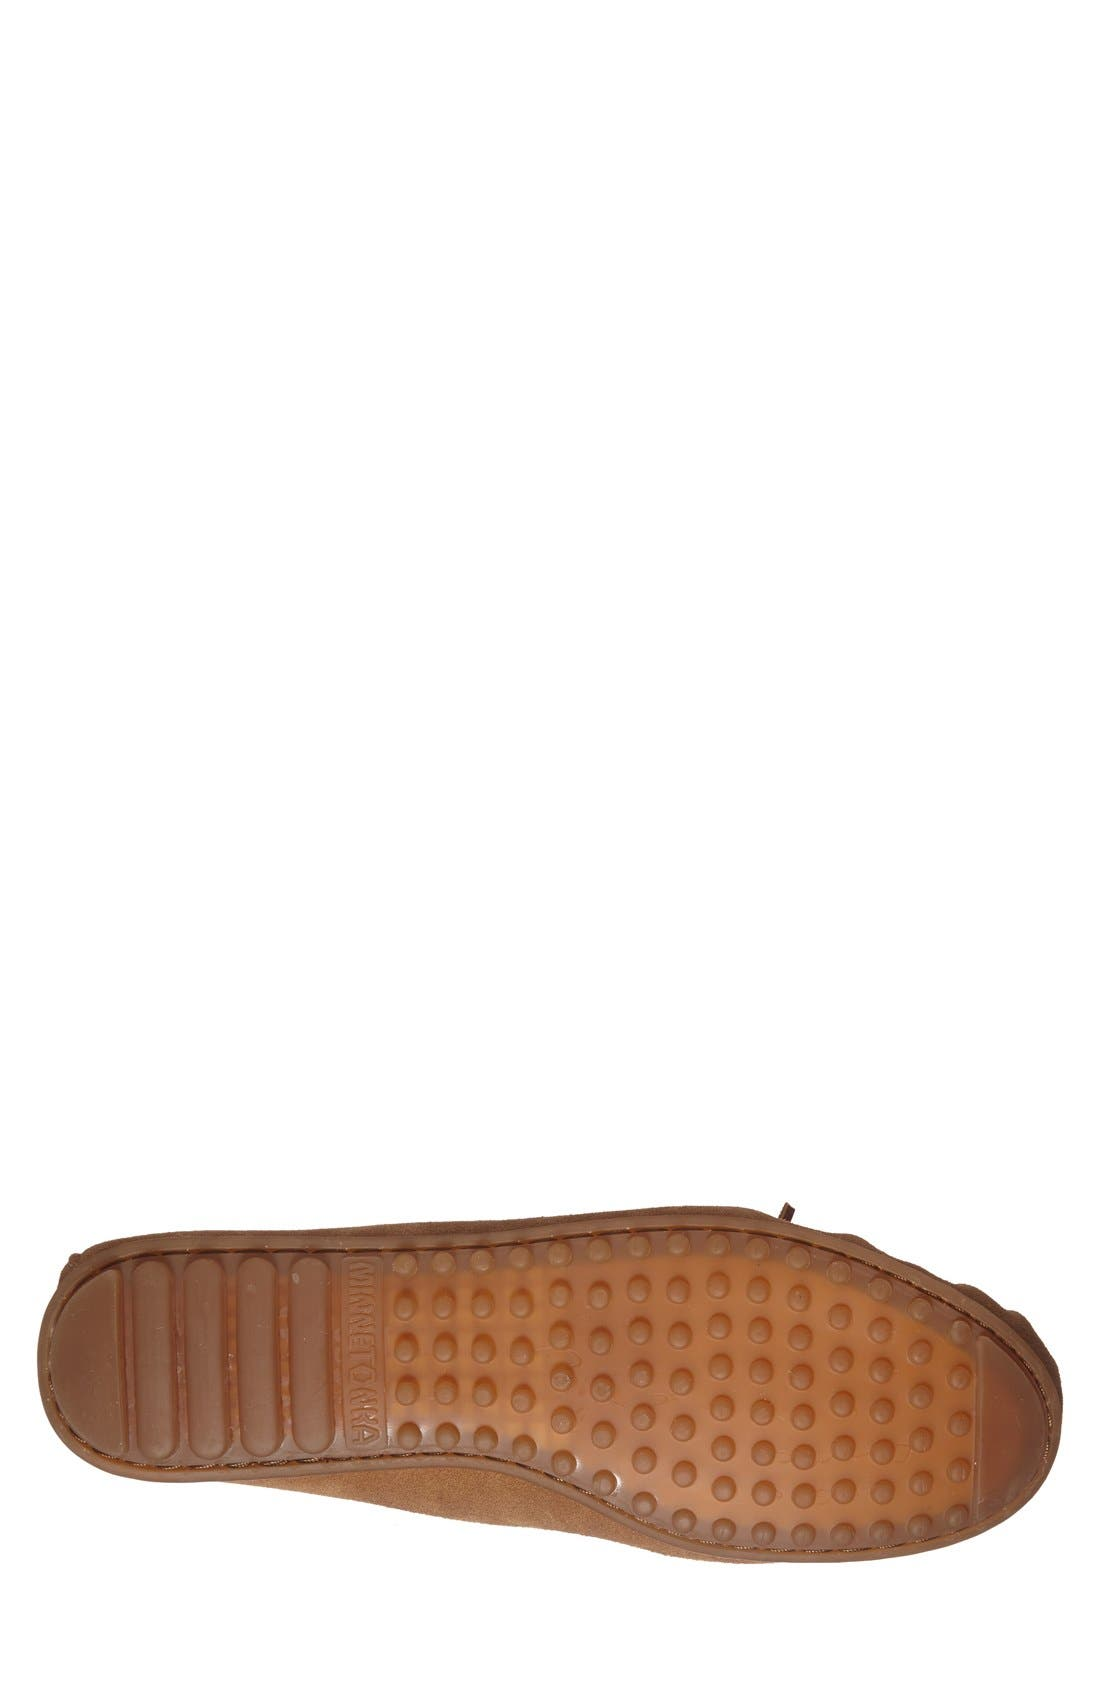 MINNETONKA, Suede Driving Shoe, Alternate thumbnail 2, color, TAUPE